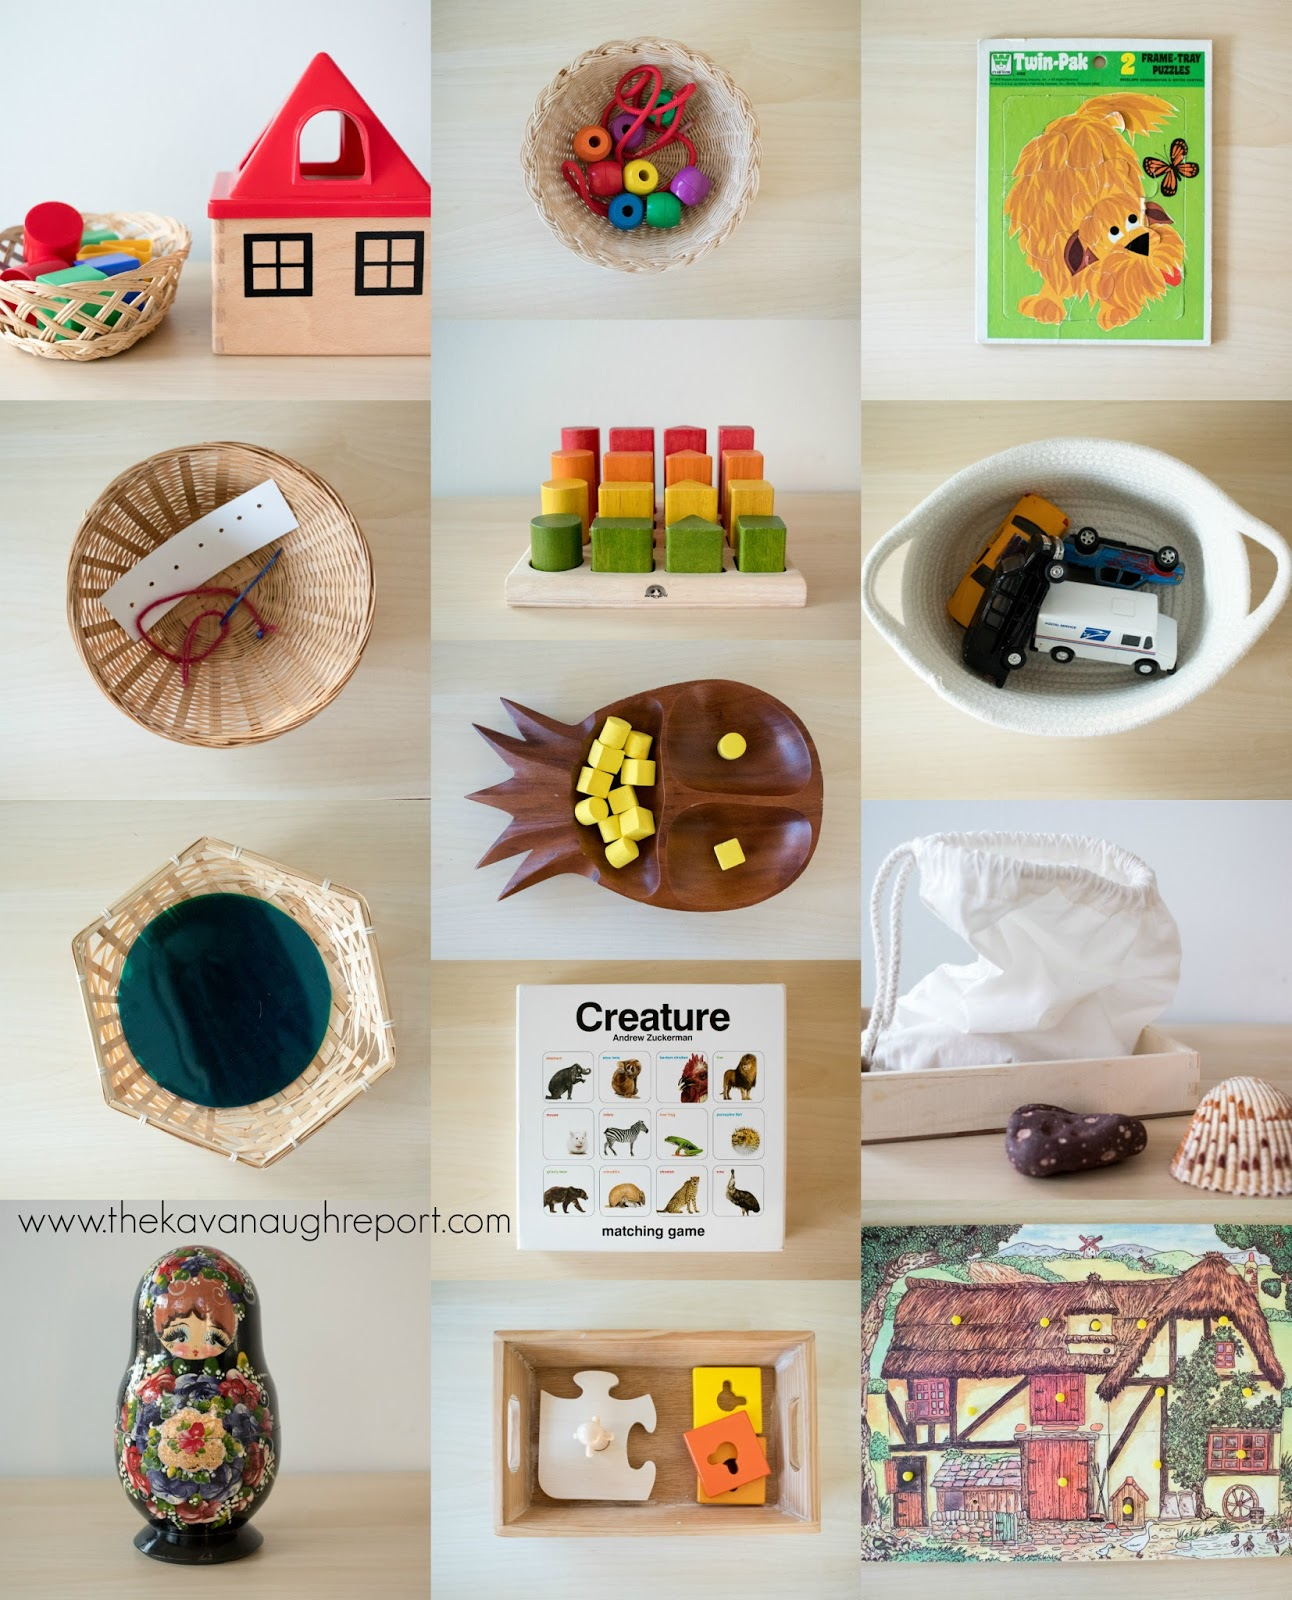 Montessori Toddler Materials At Nearly 3 Years Old